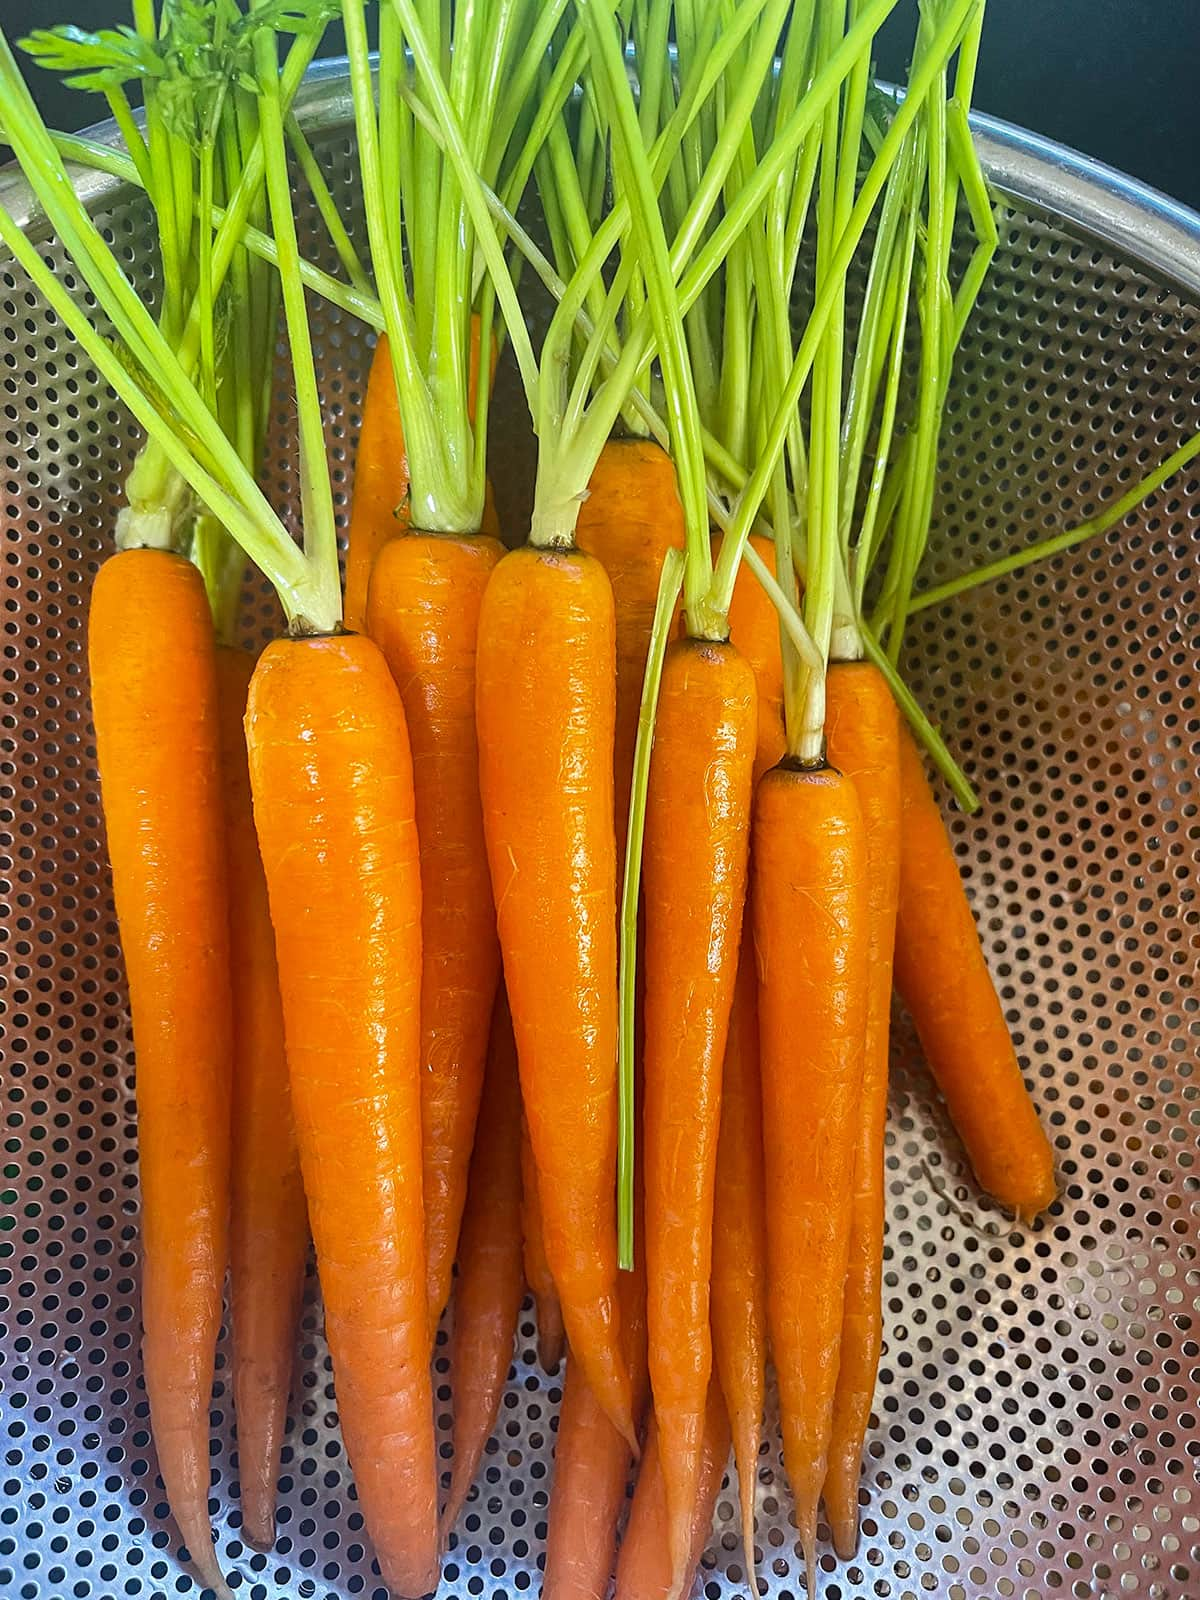 washing carrots in a colander